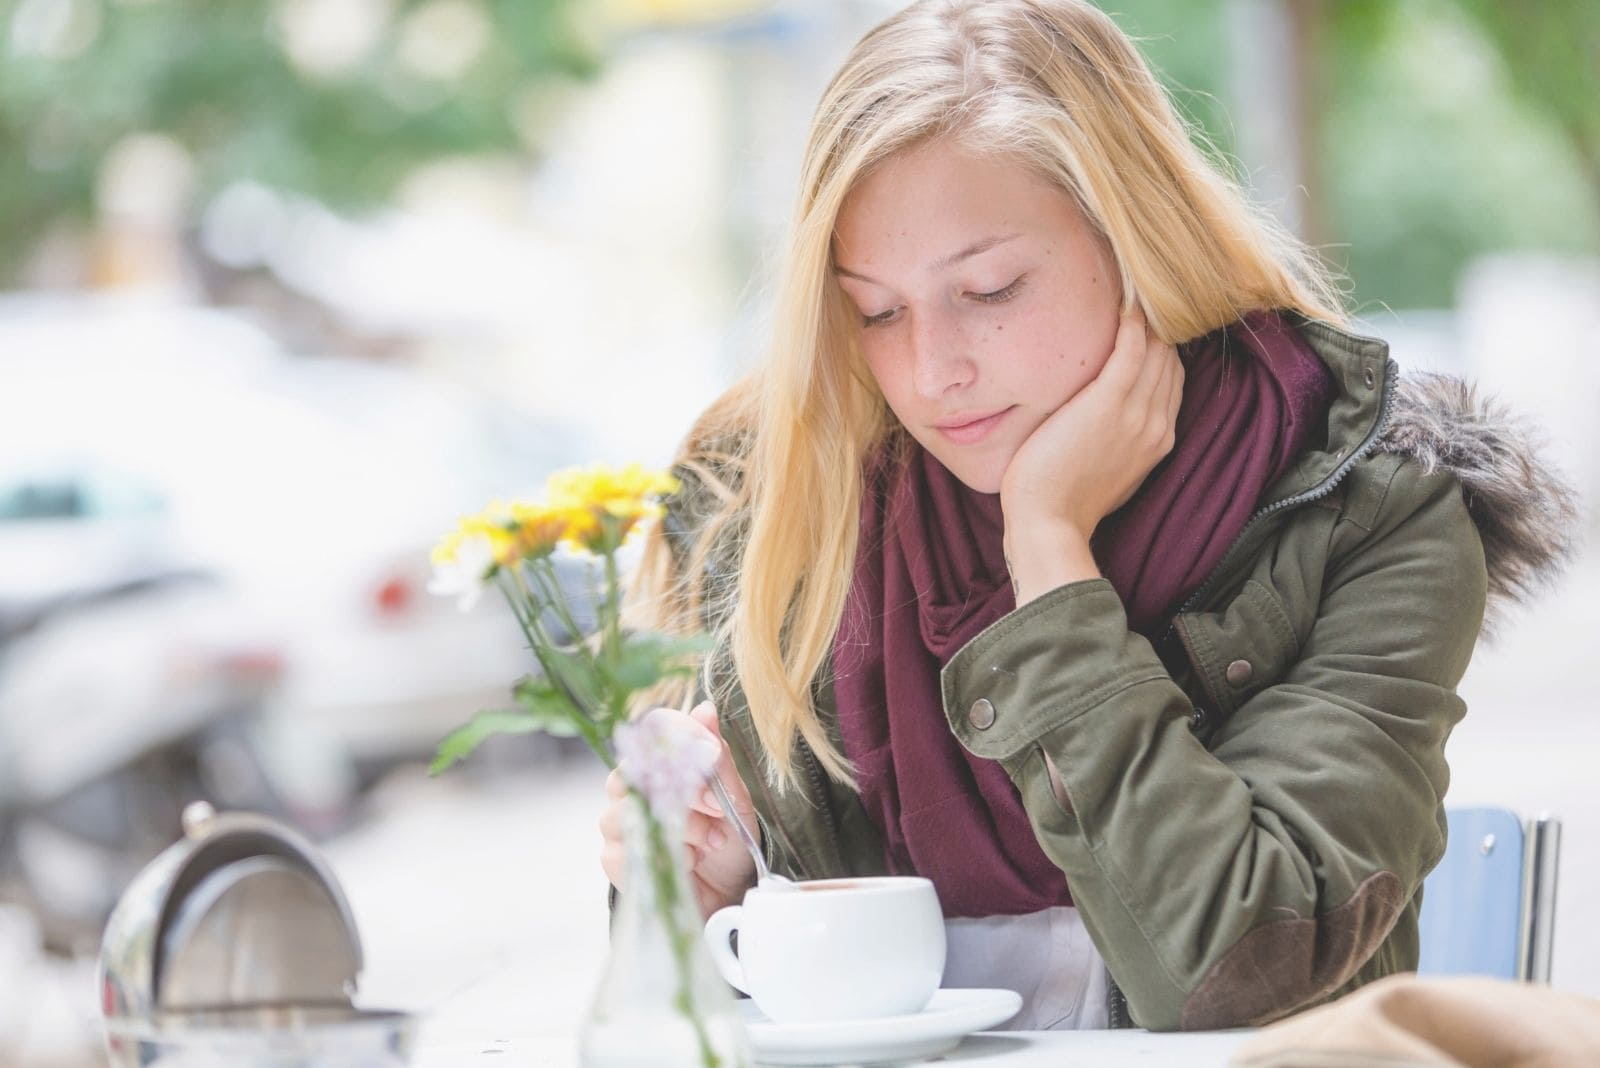 woman waiting in cafe outside lost in thoughts and mixing her coffee